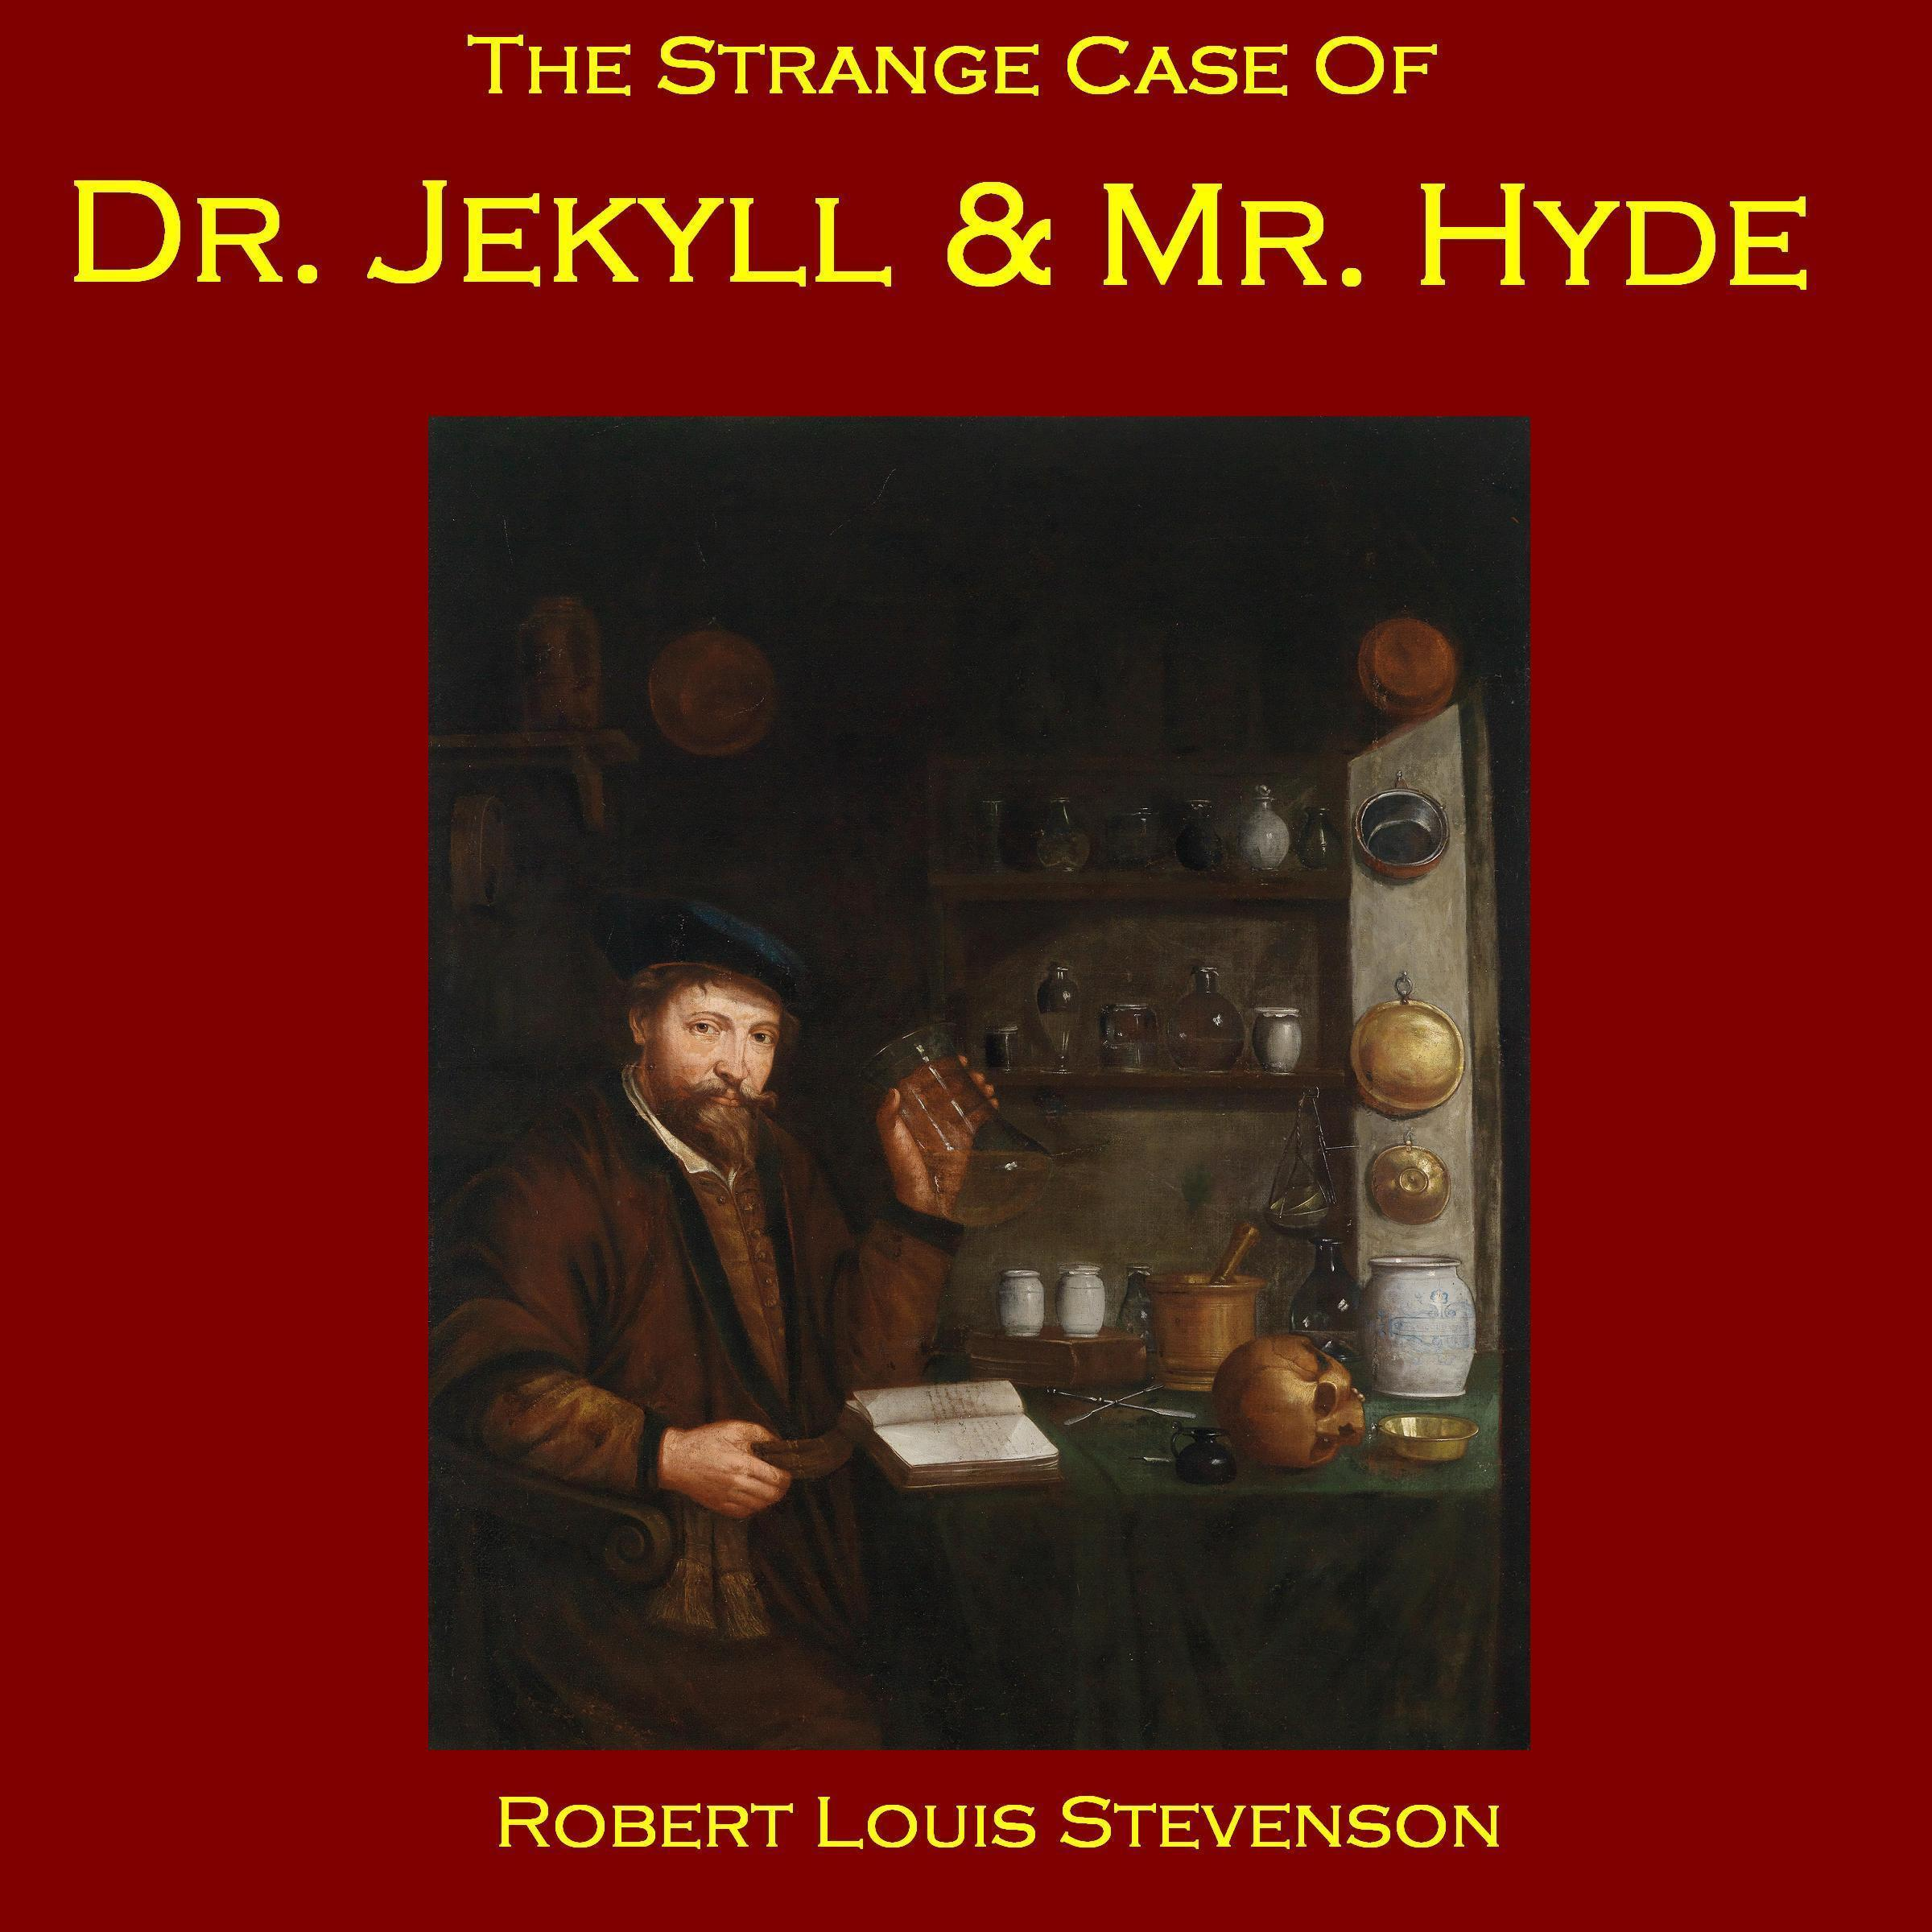 the strange case of dr jekyll 2 essay Strange case of dr jekyll and mr hyde is a gothic novella by the scottish author robert louis stevenson first published in 1886 the work is also known as the strange.